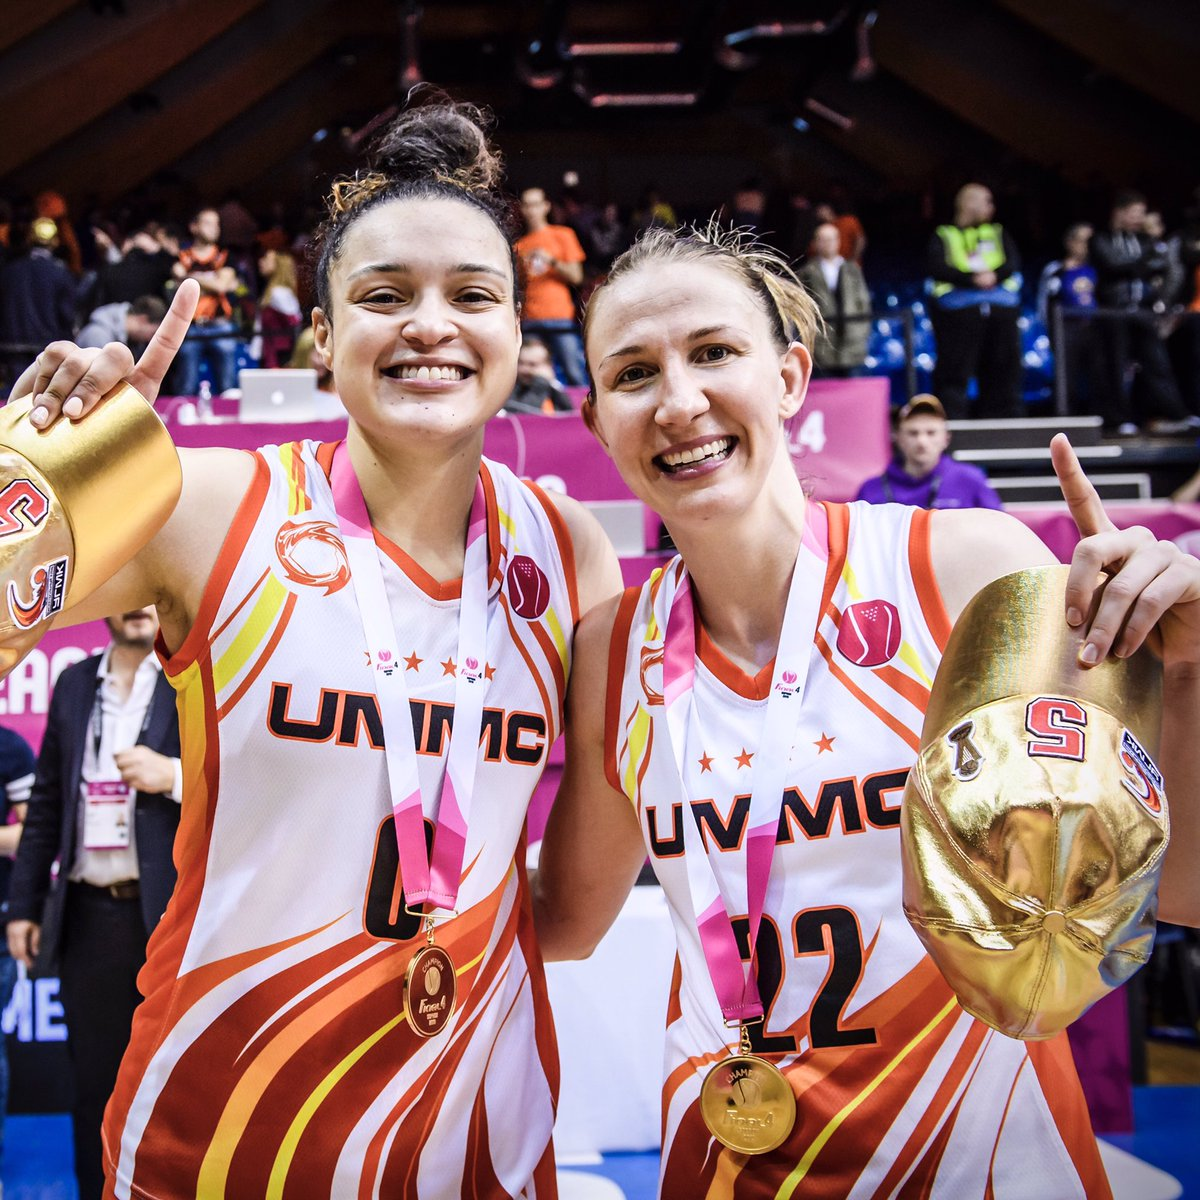 .@Sloot22 wasn't leaving Sopron without that 🥇 in her 🛄. #EuroLeagueWomen  @wnba @wnbachicagosky